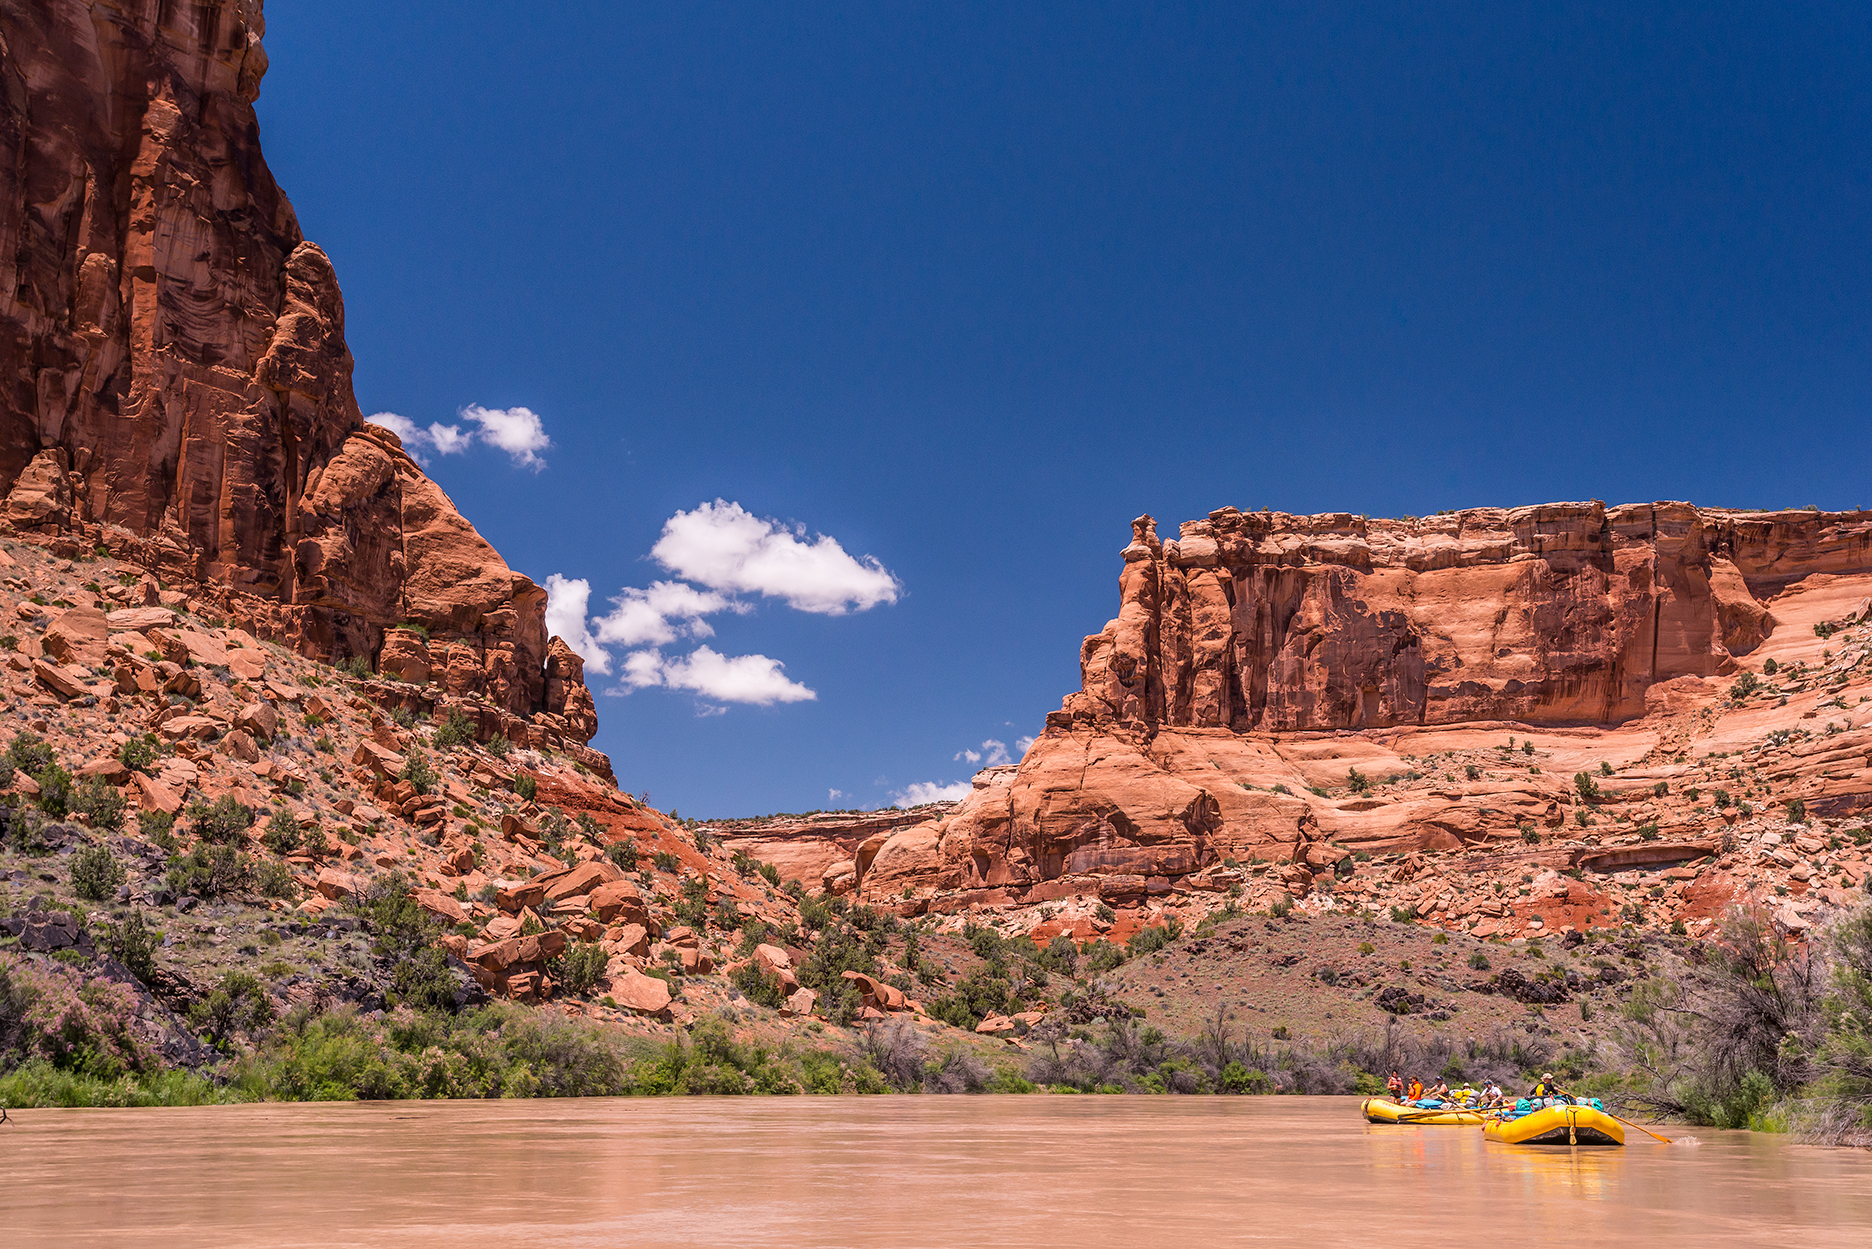 River trip through Westwater Canyon | Photo: James Kaiser